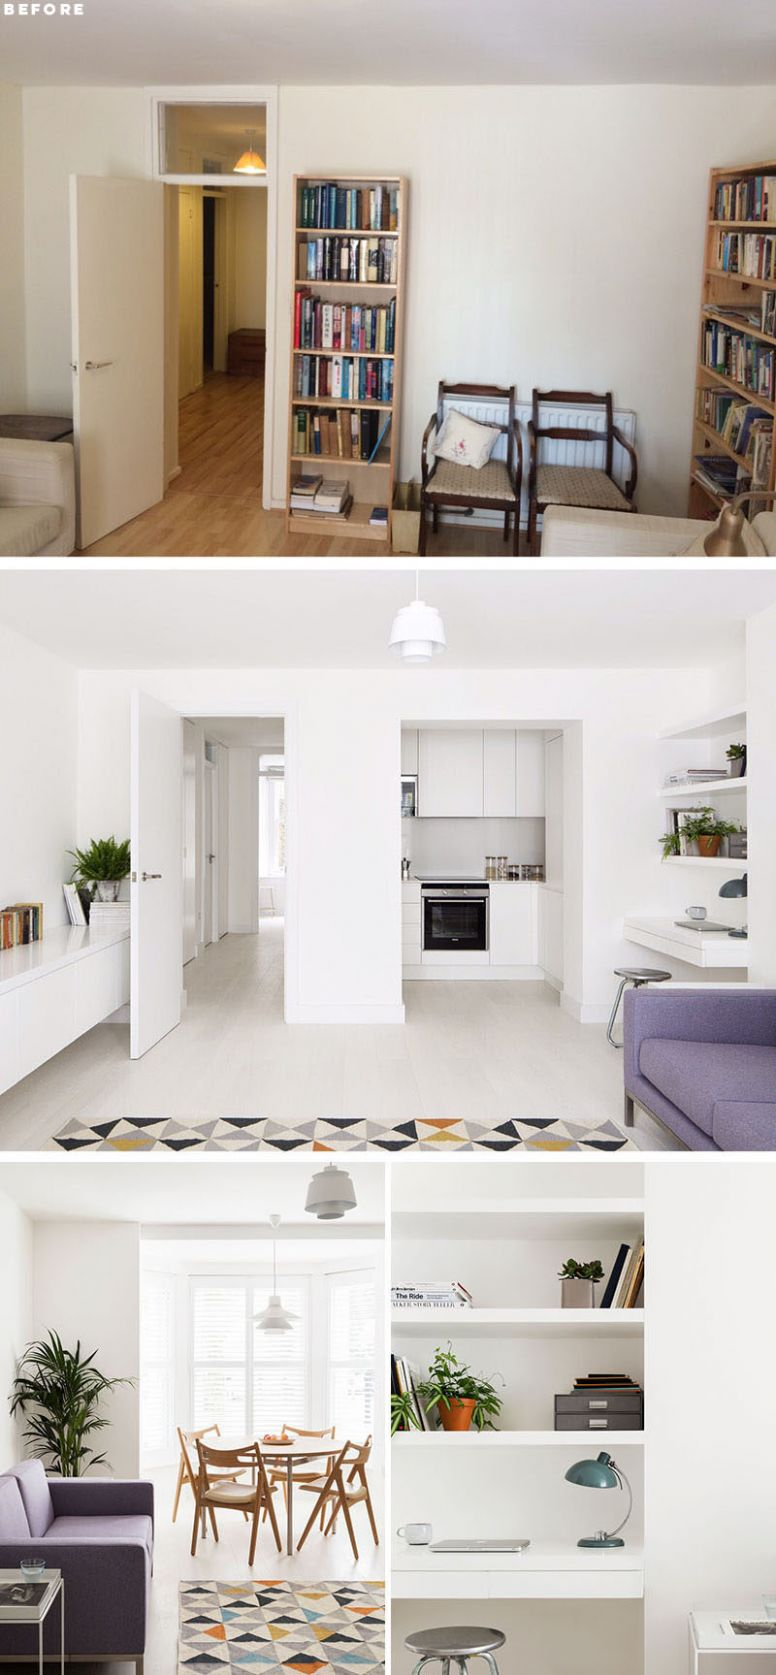 Before And After - This Small Apartment In London Was Redesigned ..